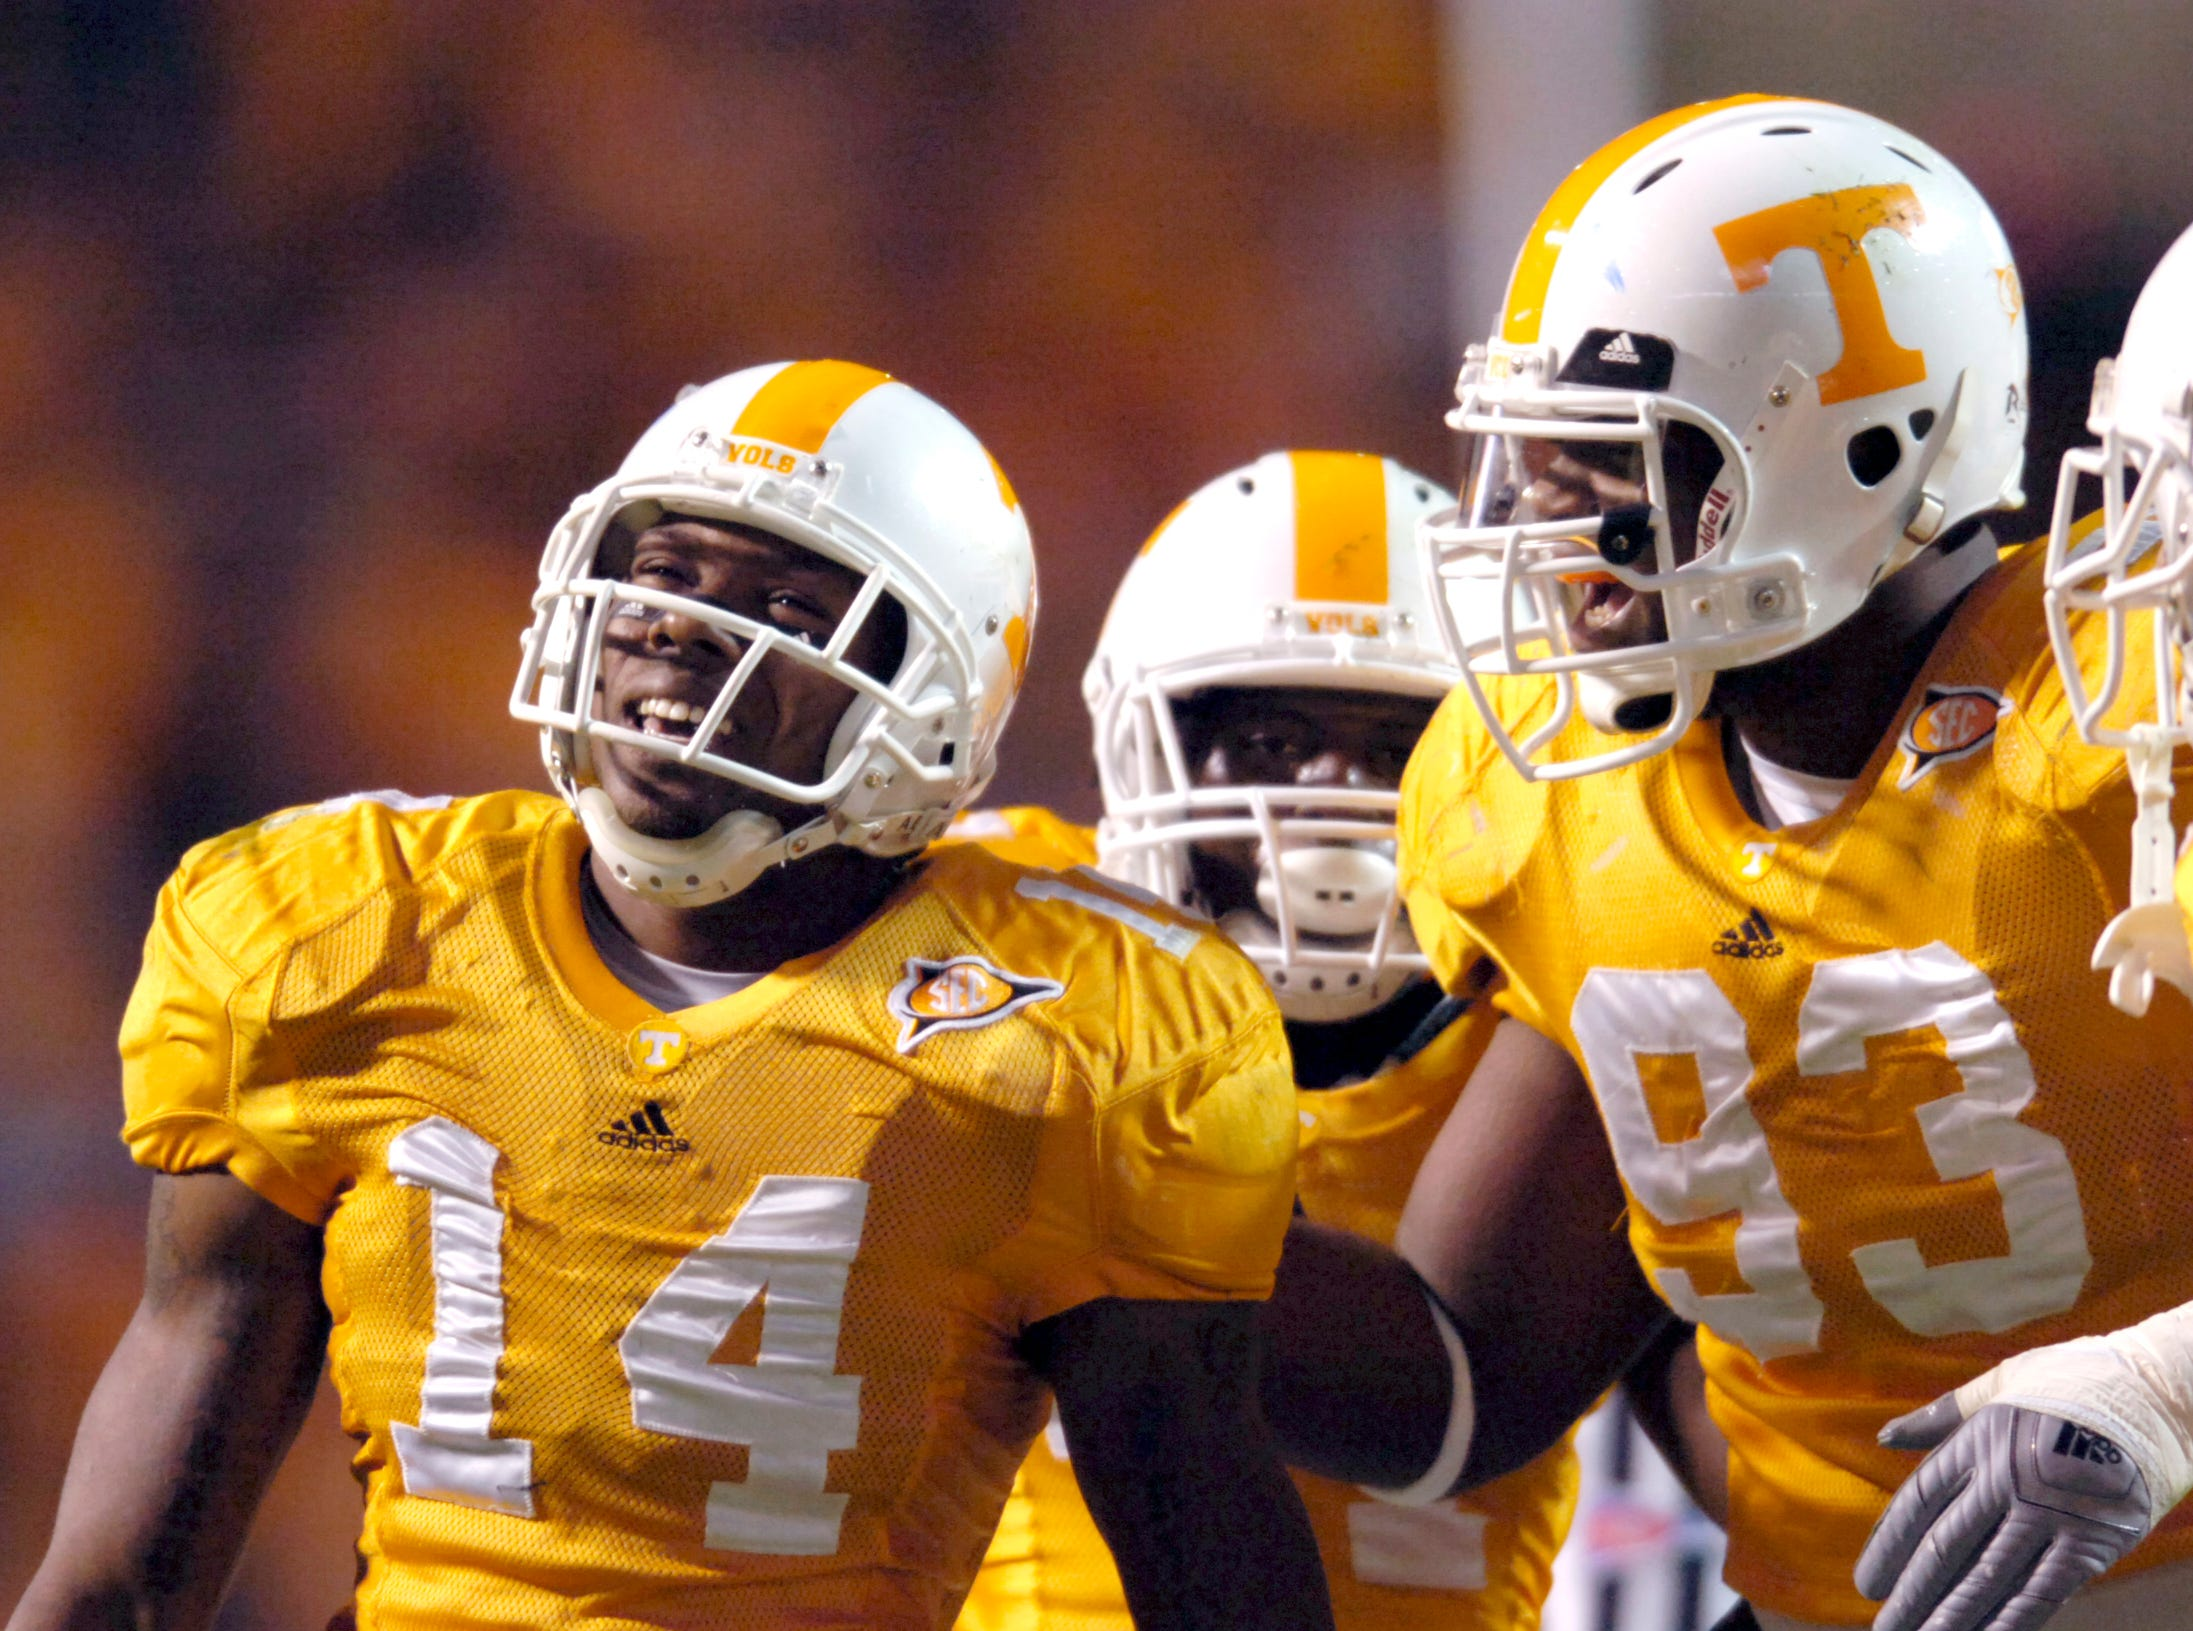 Tennessee cornerback Eric Berry (14) is congratulated by teammate defensive tackle Montori Hughes (93) after Berry intercepted a pass from Memphis  quarterback Will Hudgens (7). Berry is one interception and 8 yards away from breaking an NCAA record on Saturday, Nov. 7, 2009 at Neyland Stadium.